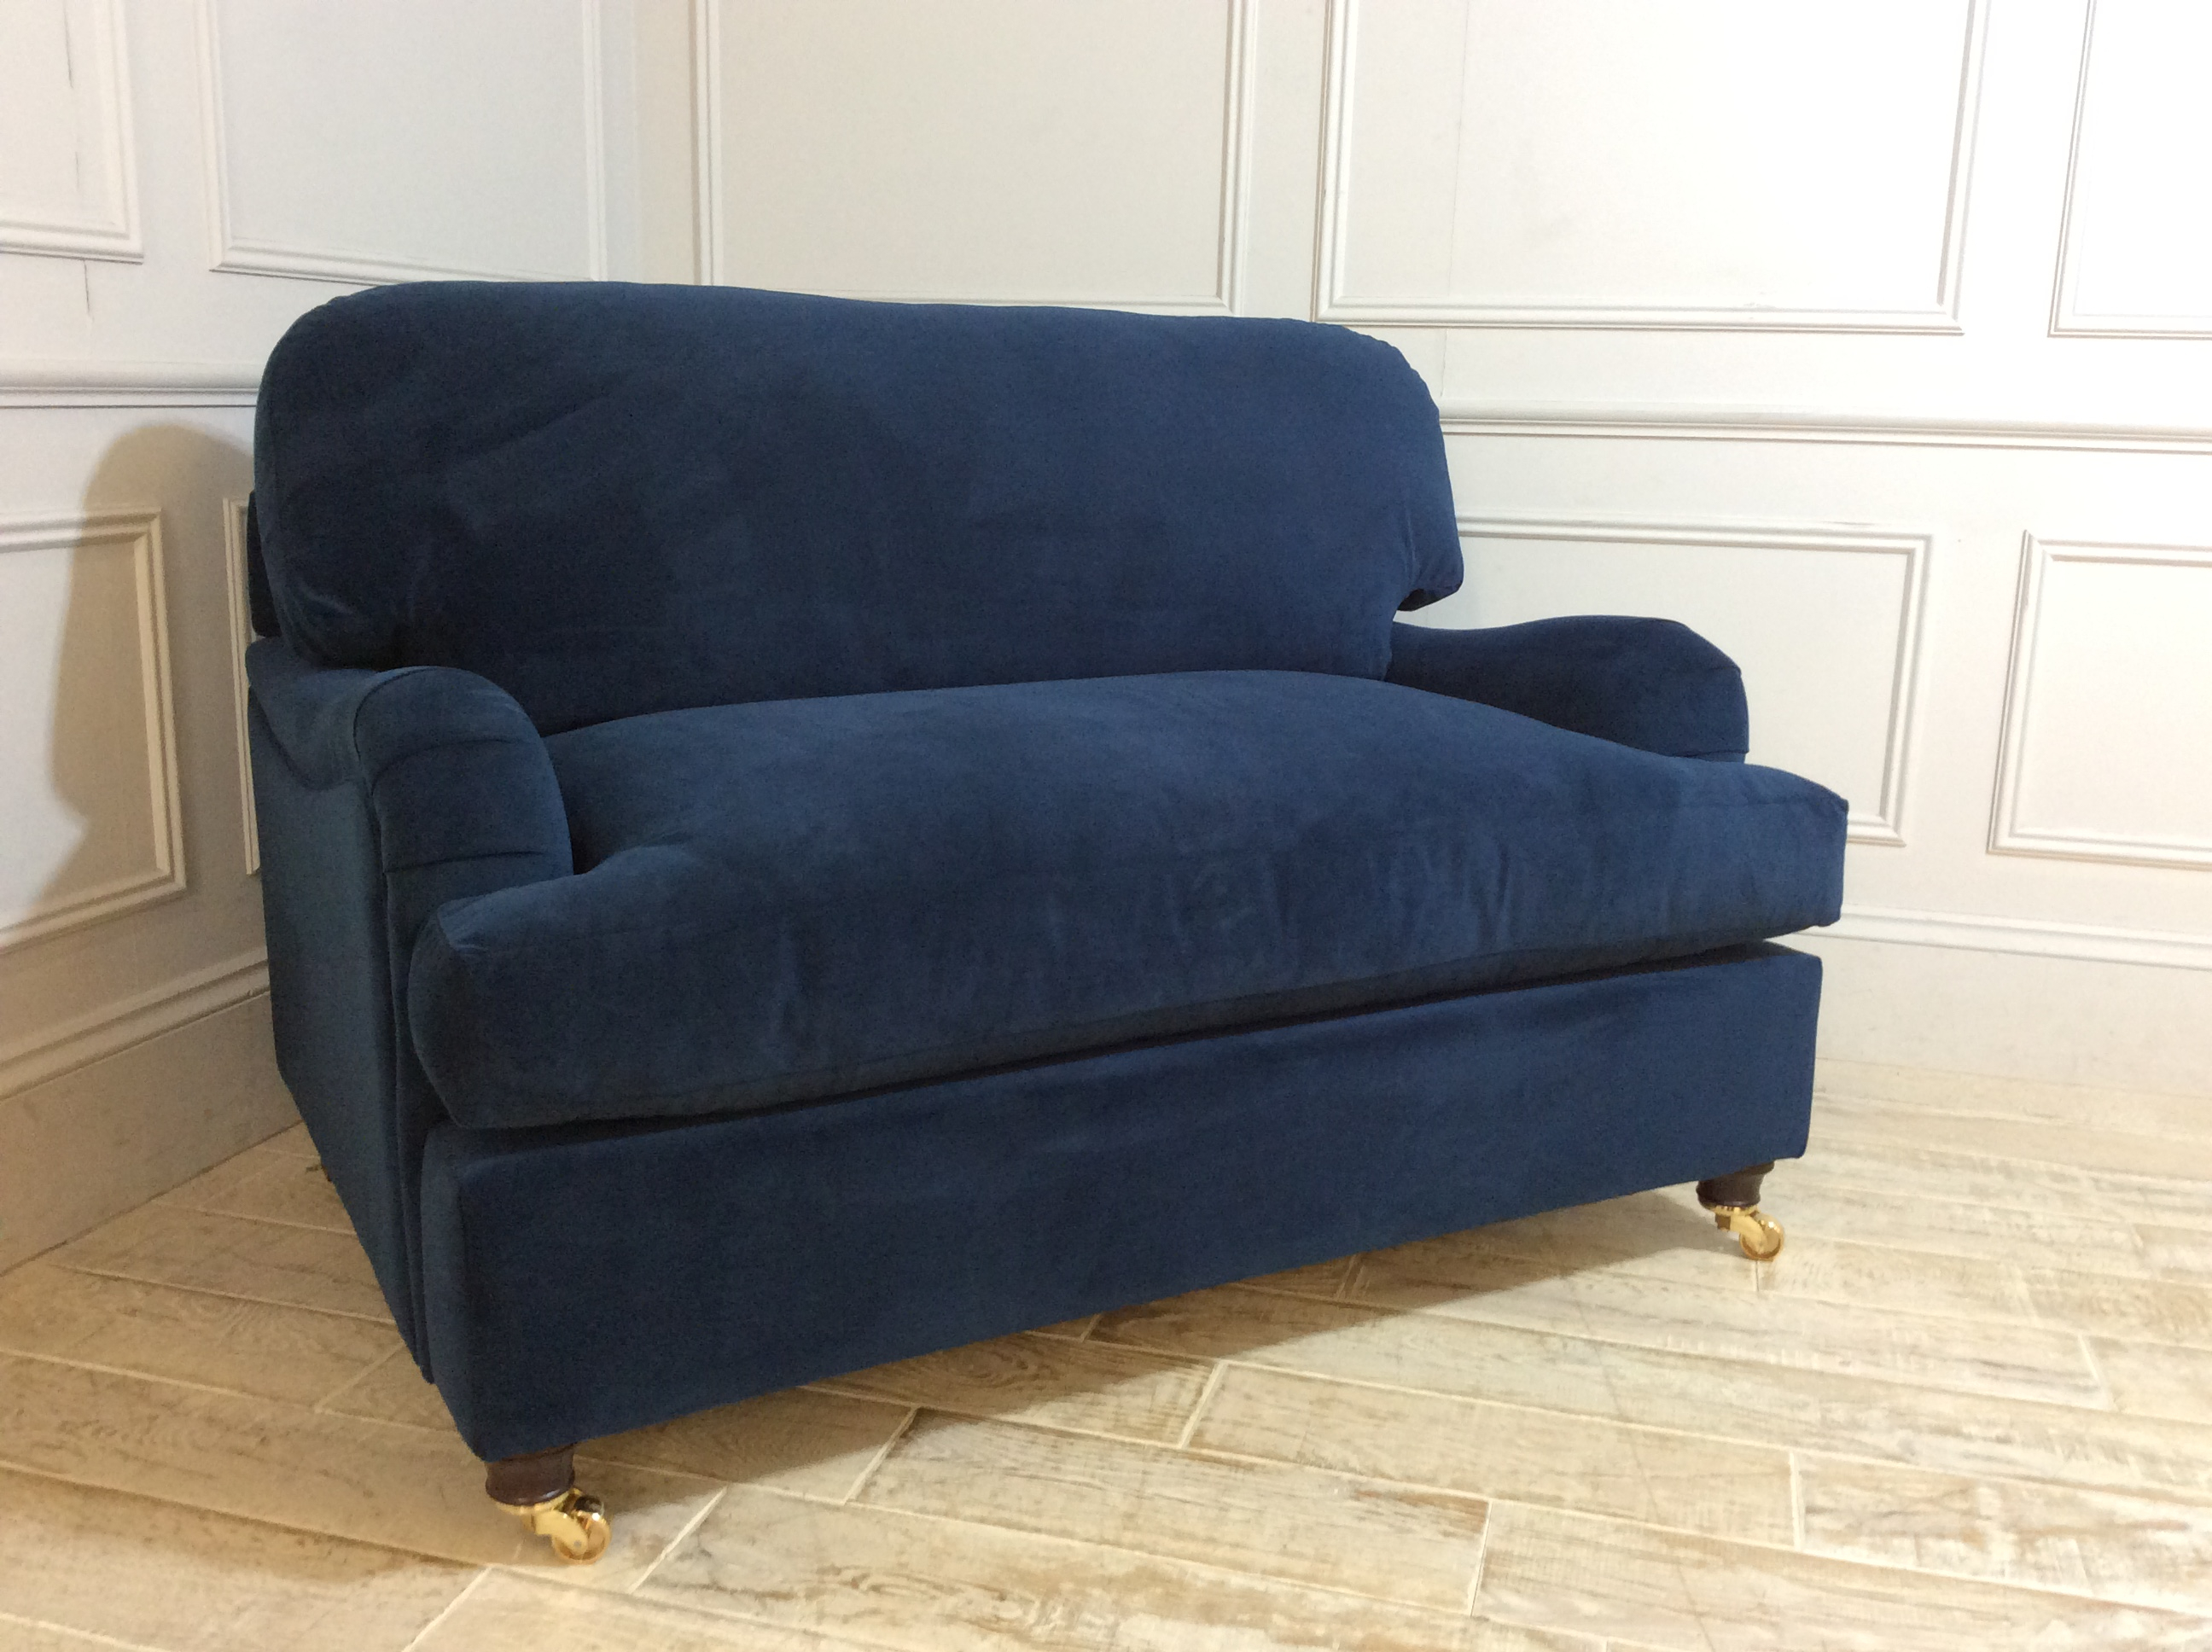 Helston Loveseat Sofa Bed in Royal Blue